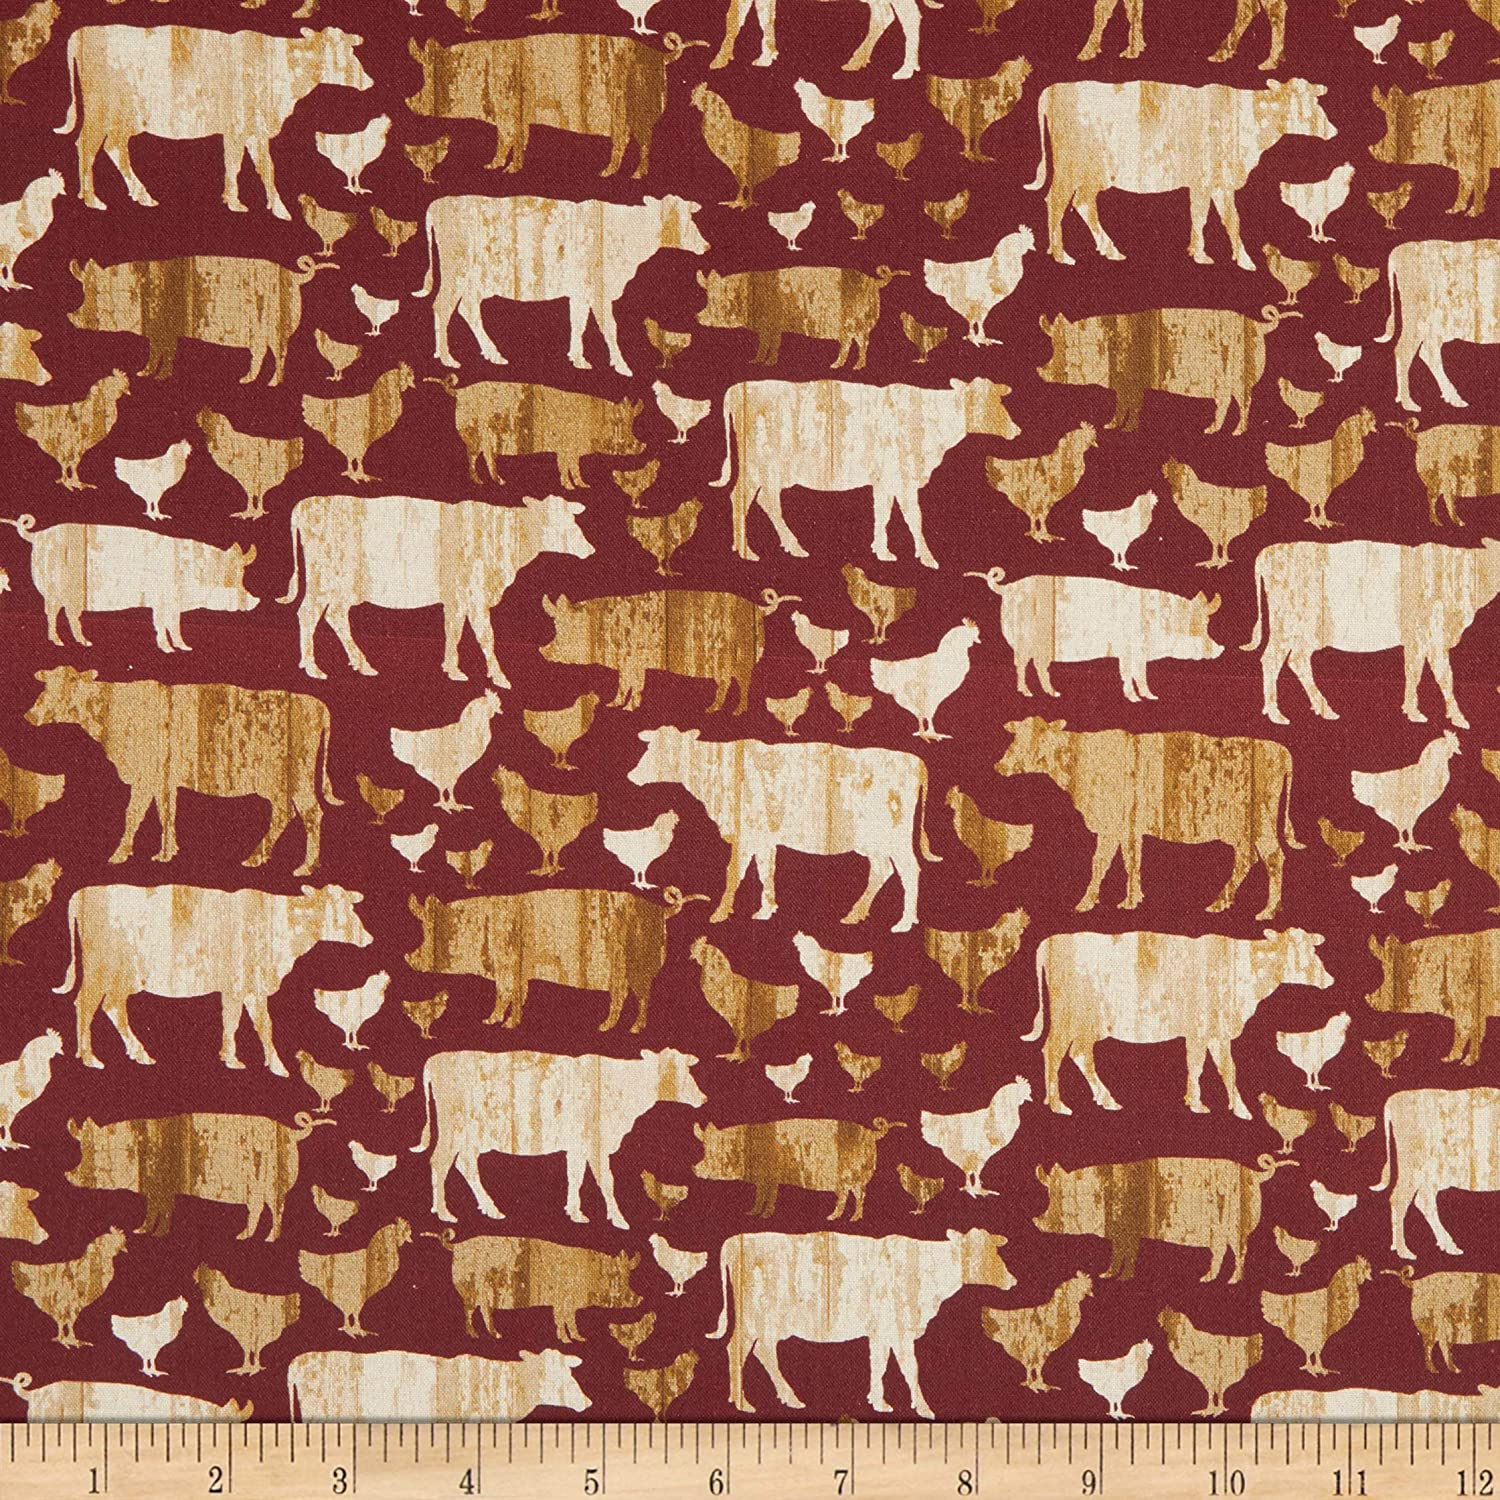 Benartex Quilter Barn Prints Large Farm Animals Red Fabric by the Yard